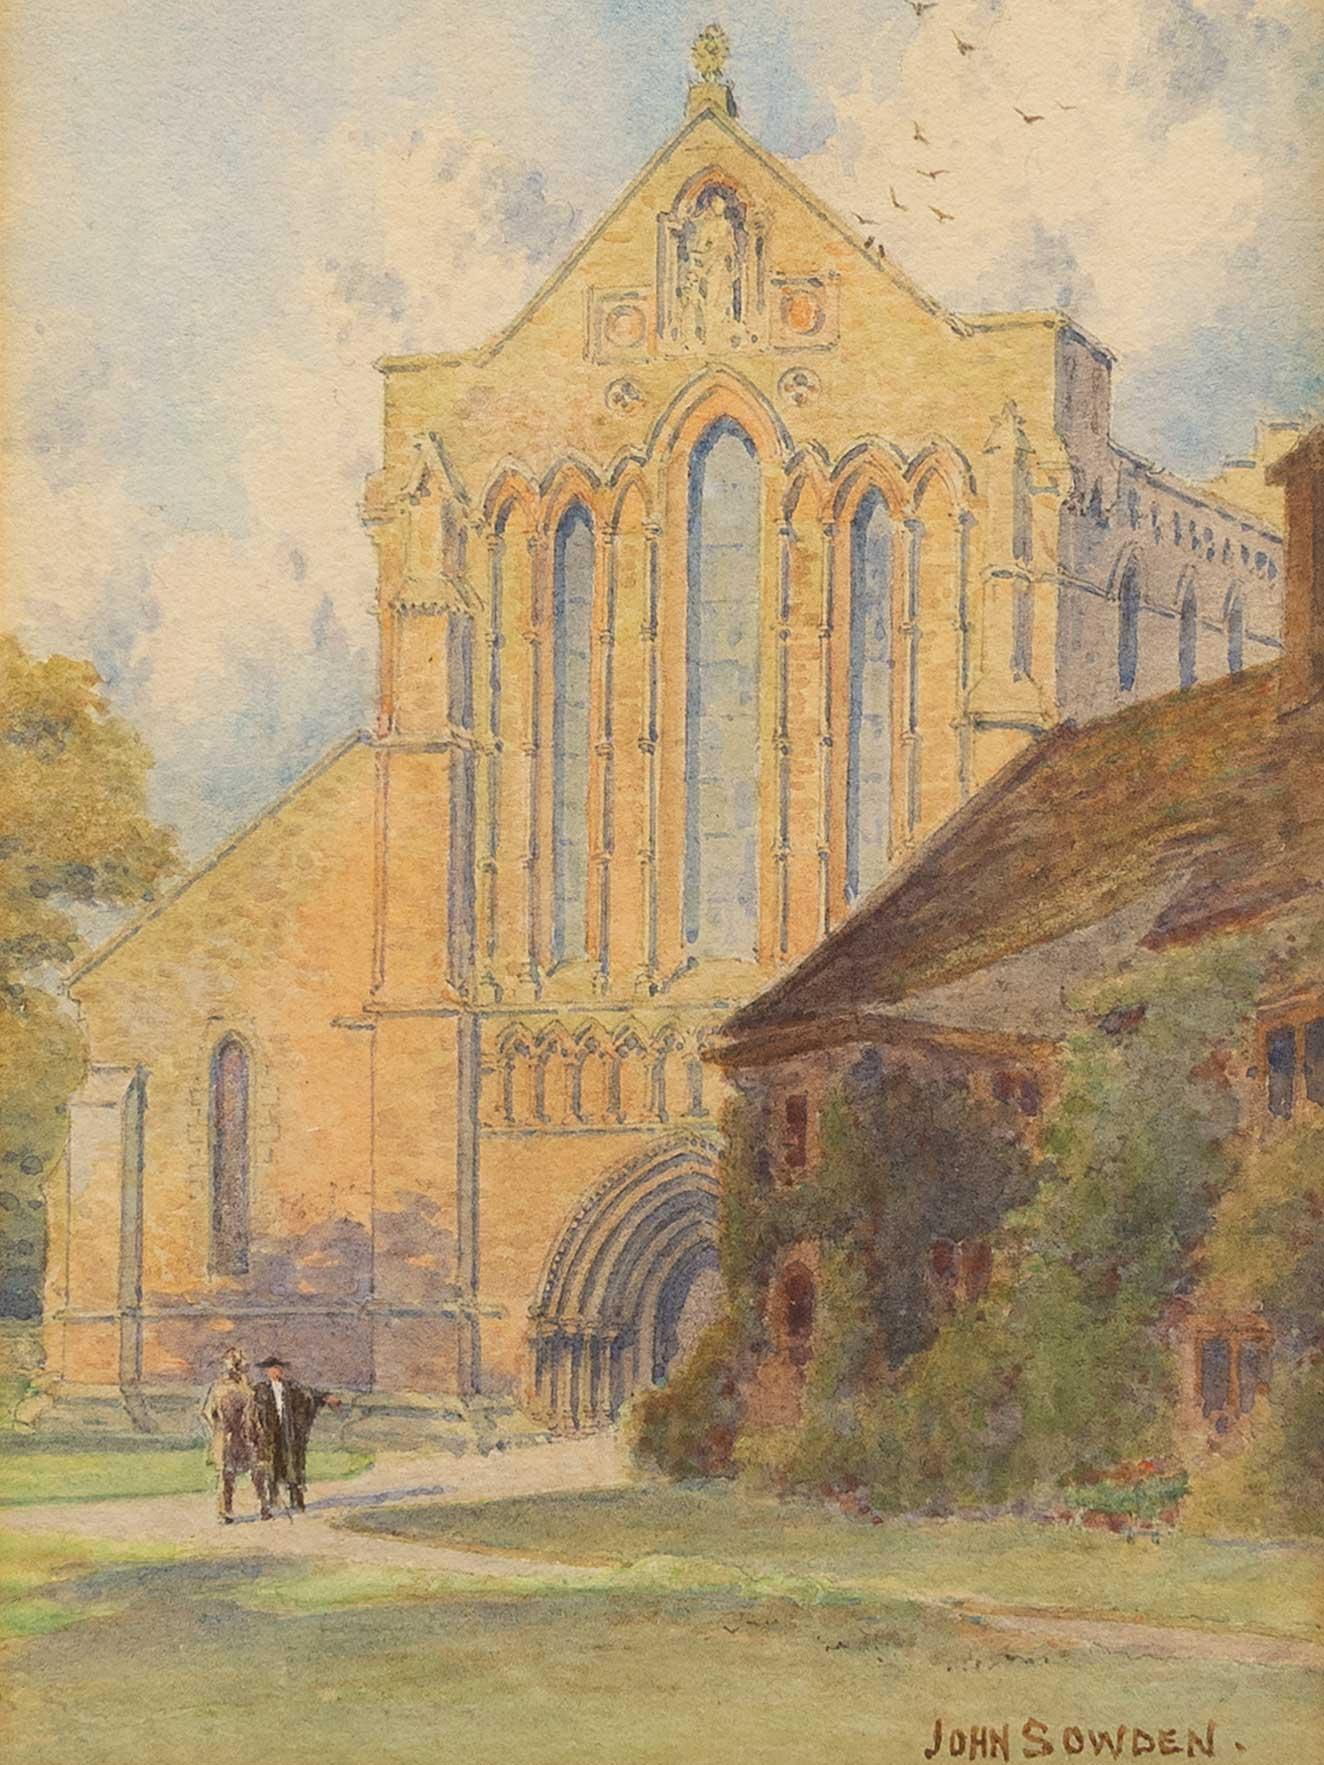 """Jon Sowden (British 1838 - 1926) Watercolour, """"Lanercost Priory Cumberland"""", Signed Titled & Dated 1899 Verso, 17 x 12"""